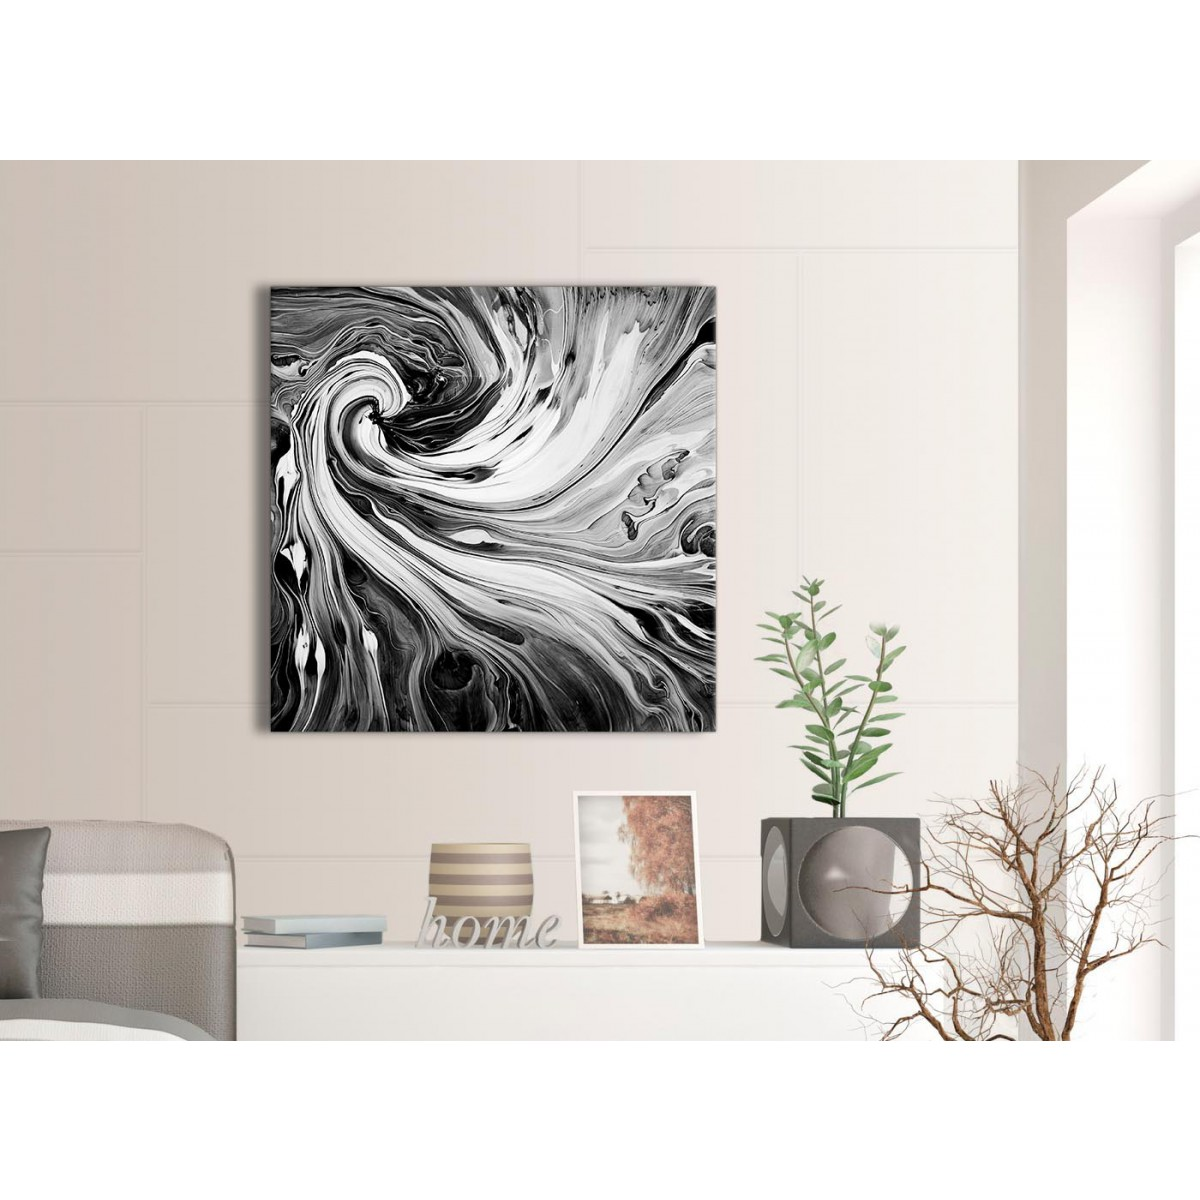 black white grey swirls modern abstract canvas wall art 79cm square 1s354l. Black Bedroom Furniture Sets. Home Design Ideas